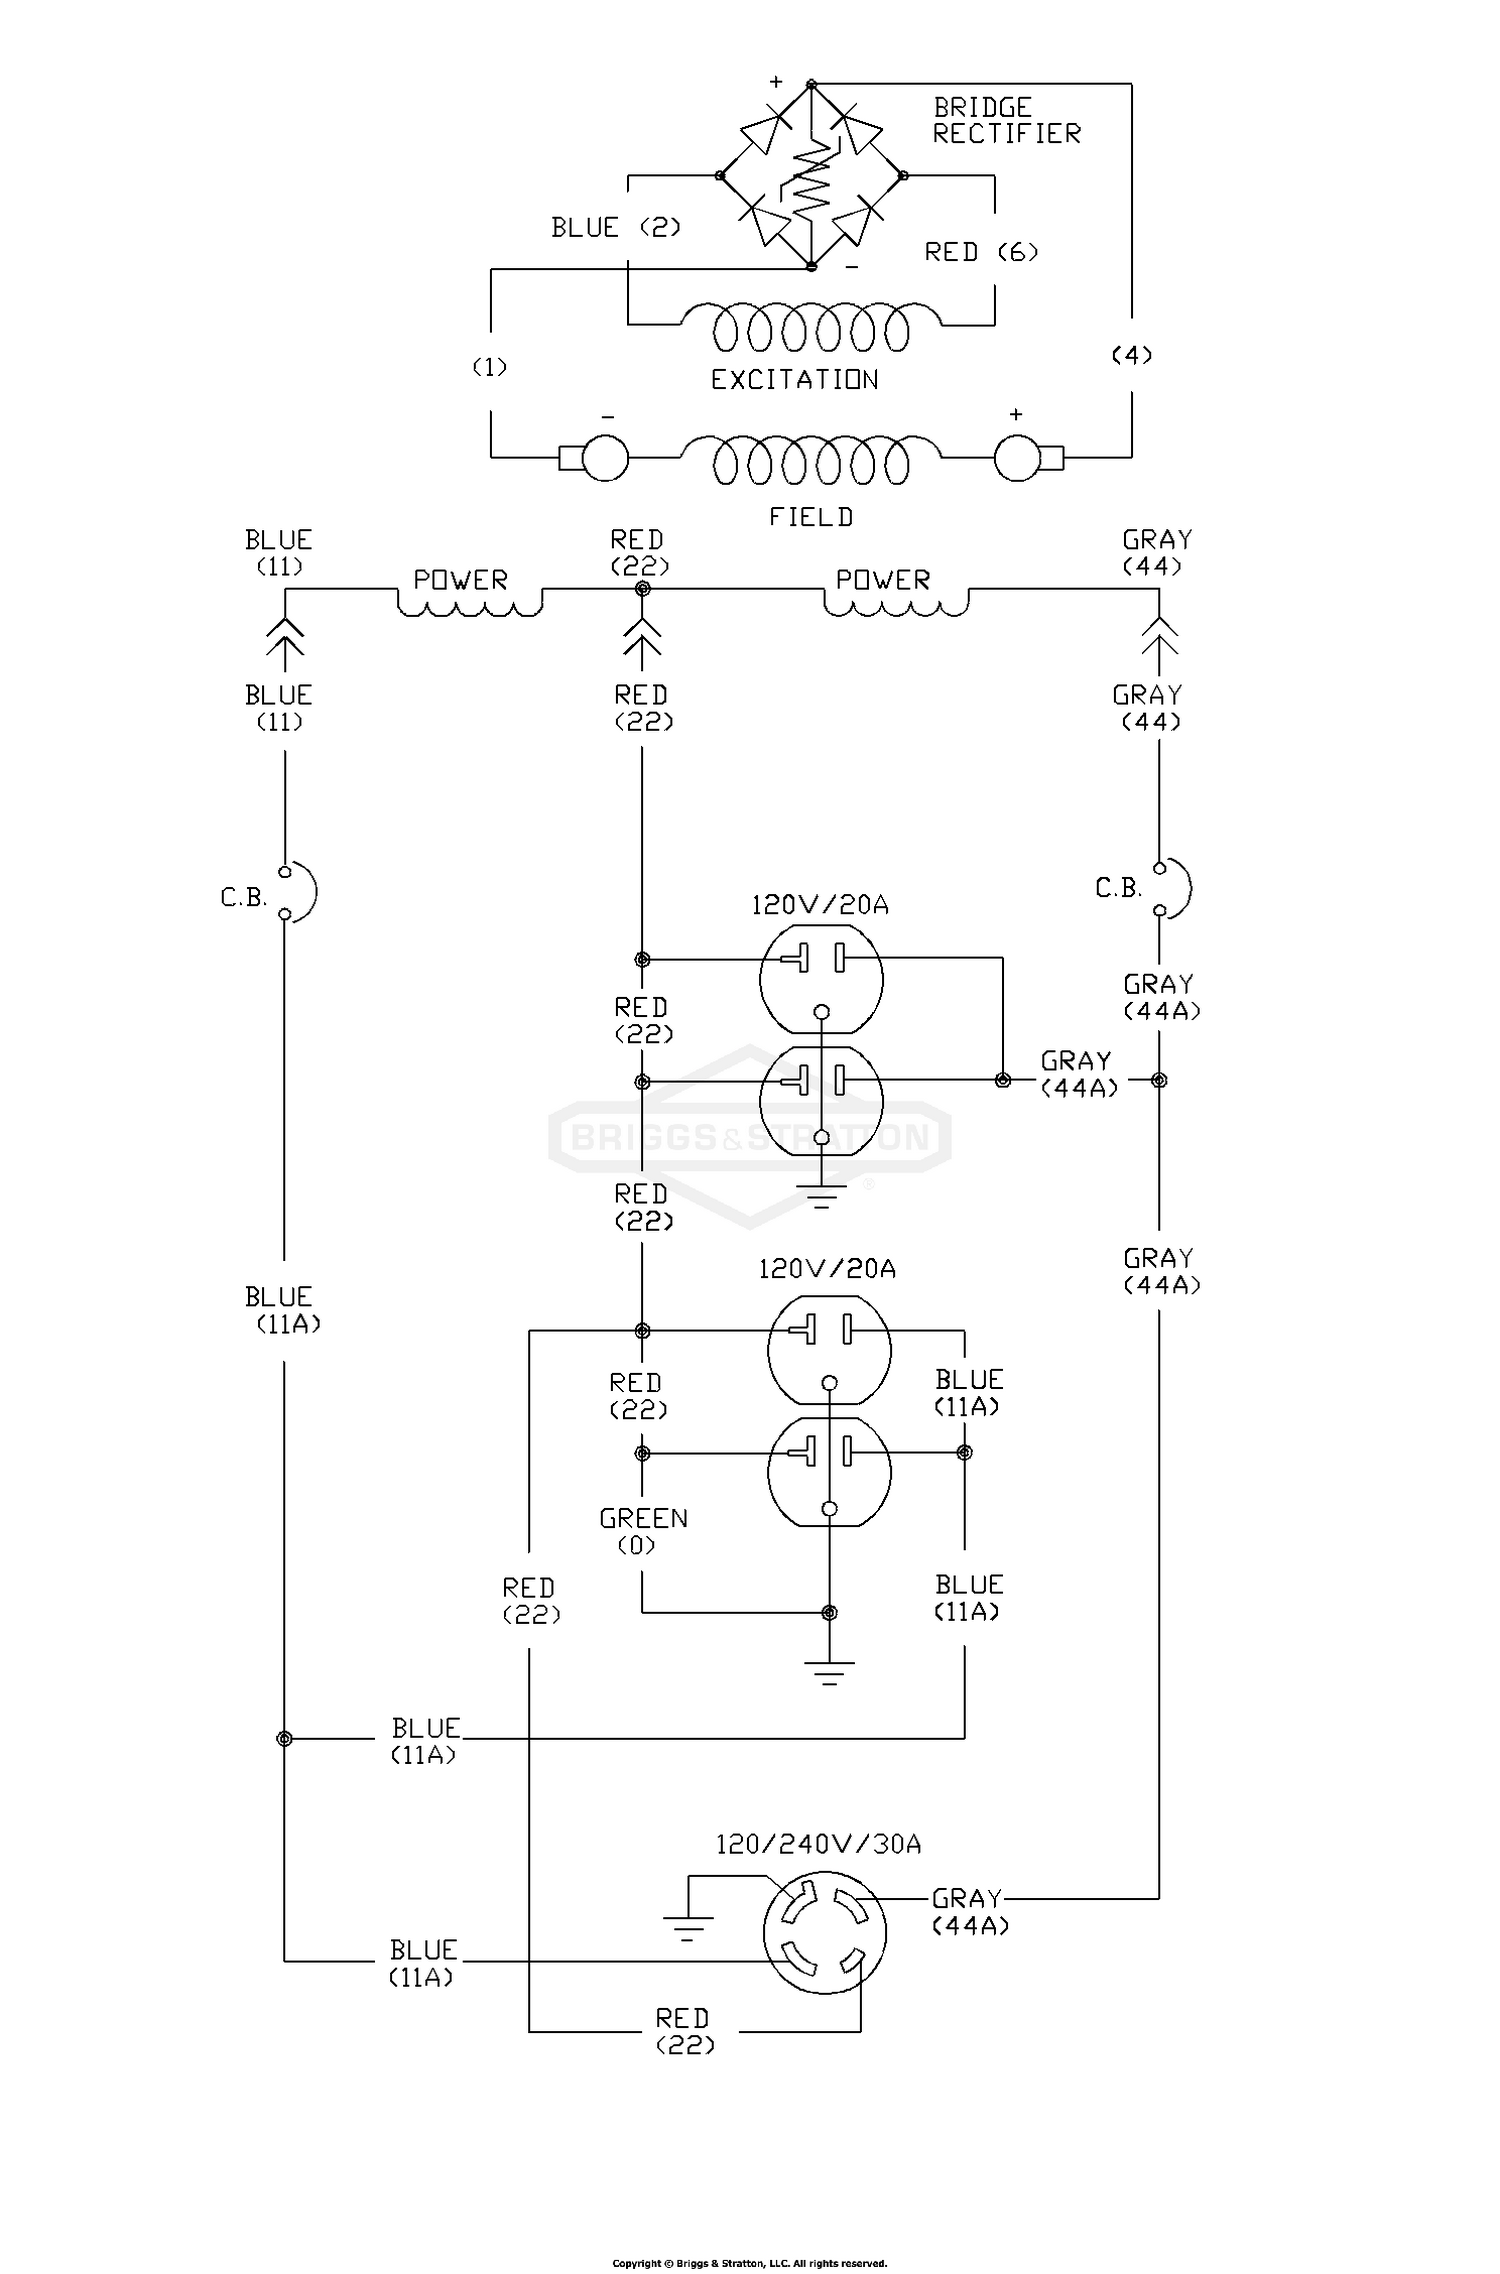 Briggs Amp Stratton Power Products Del 26072017021729 1677 0 Wiring Diagram For House Generator Schematic